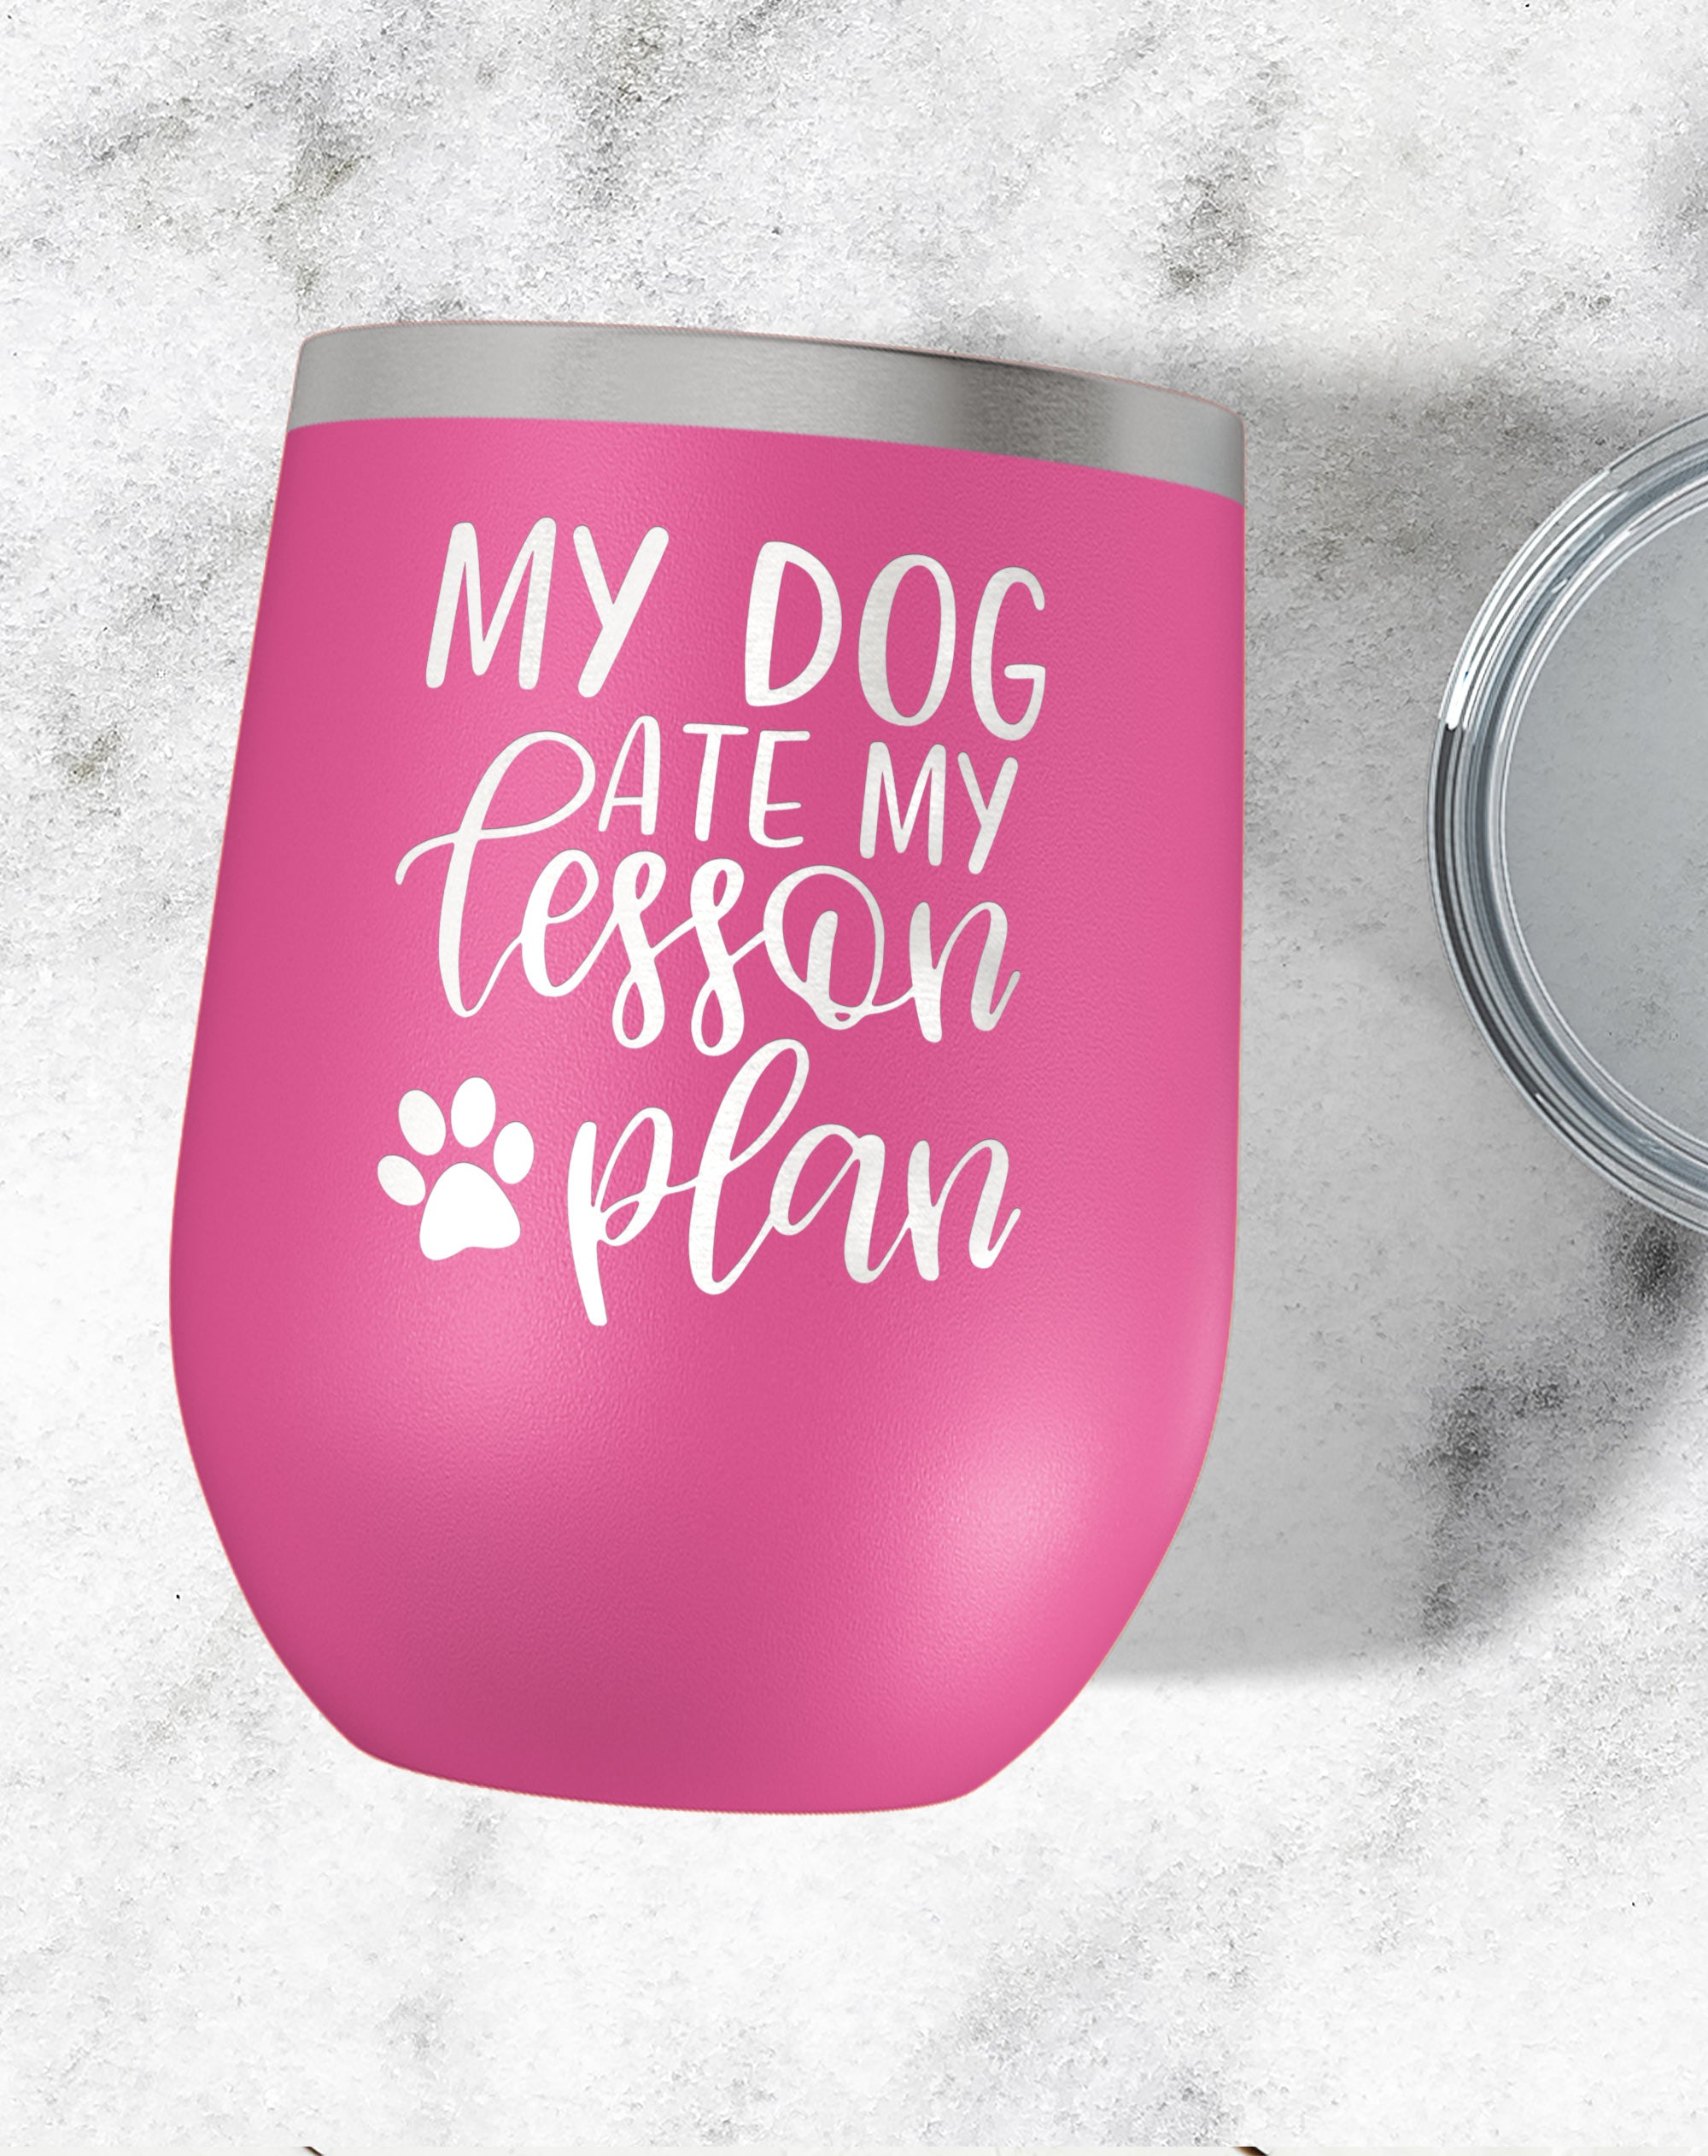 My Dog Ate My Lesson Plan Wine Tumbler-Wine Tumblers-Maddie & Co.